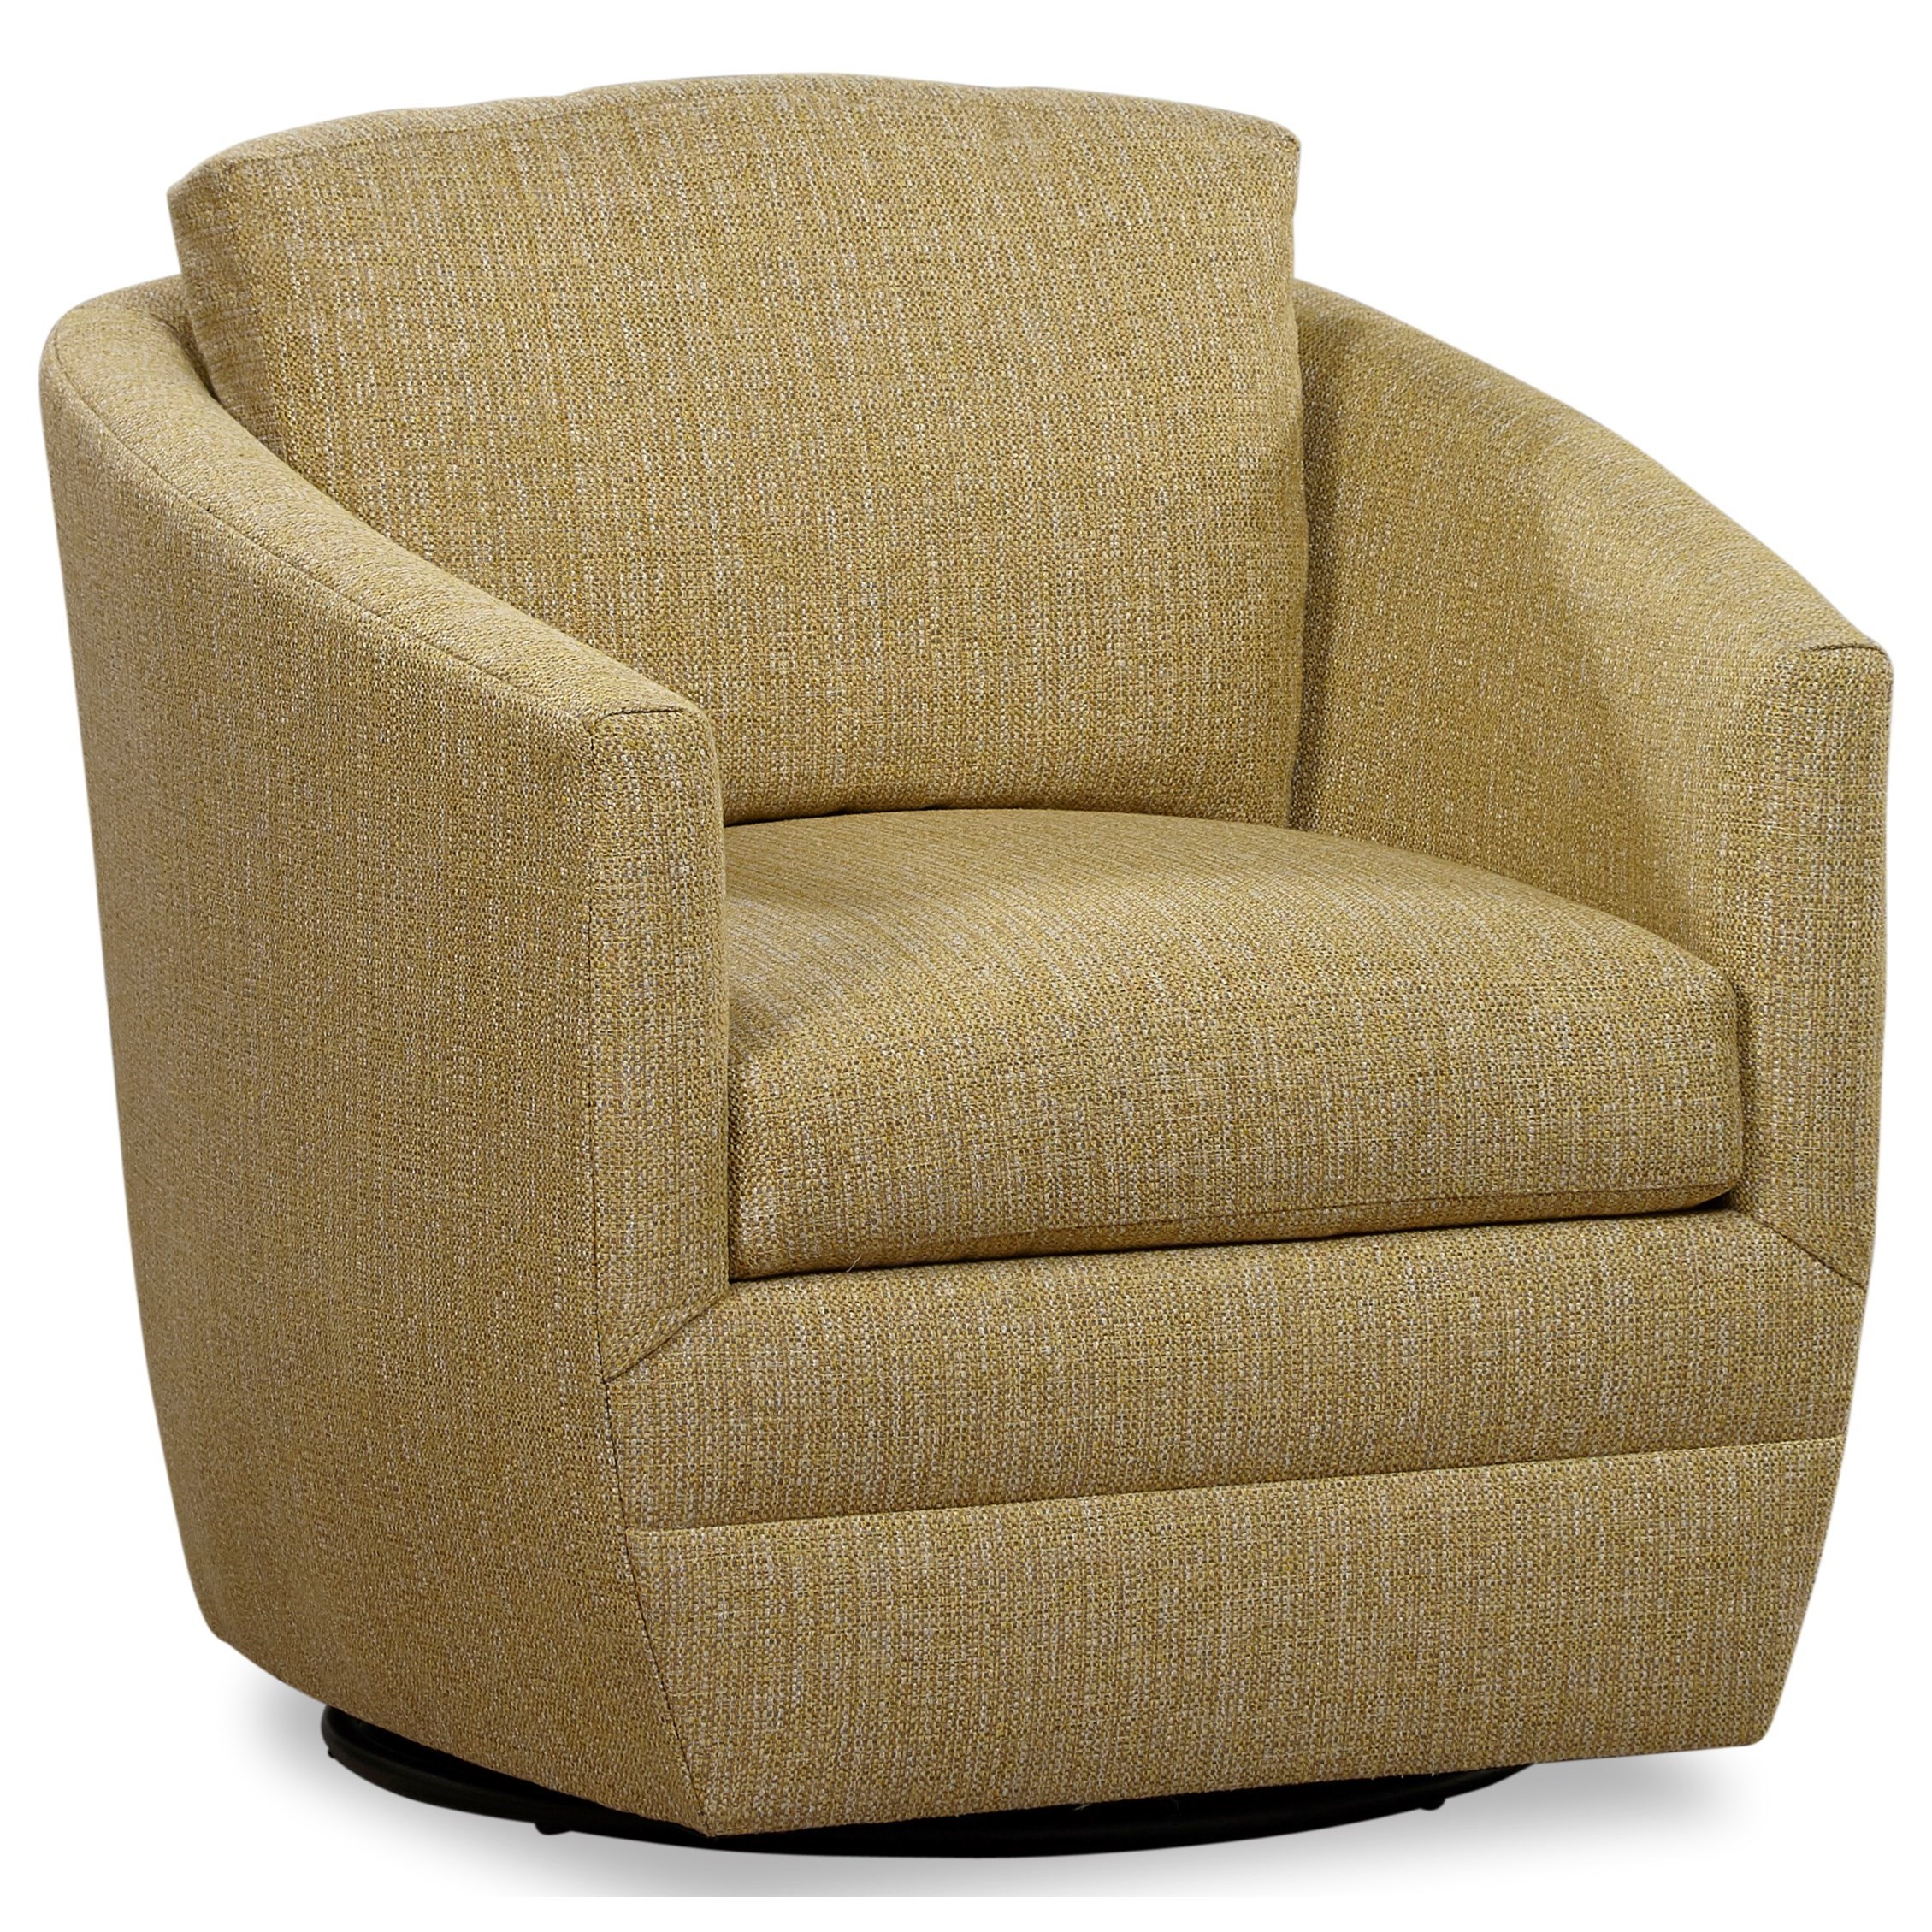 7279 Upholstered Accent Swivel Barrel Chair by Geoffrey Alexander at Sprintz Furniture